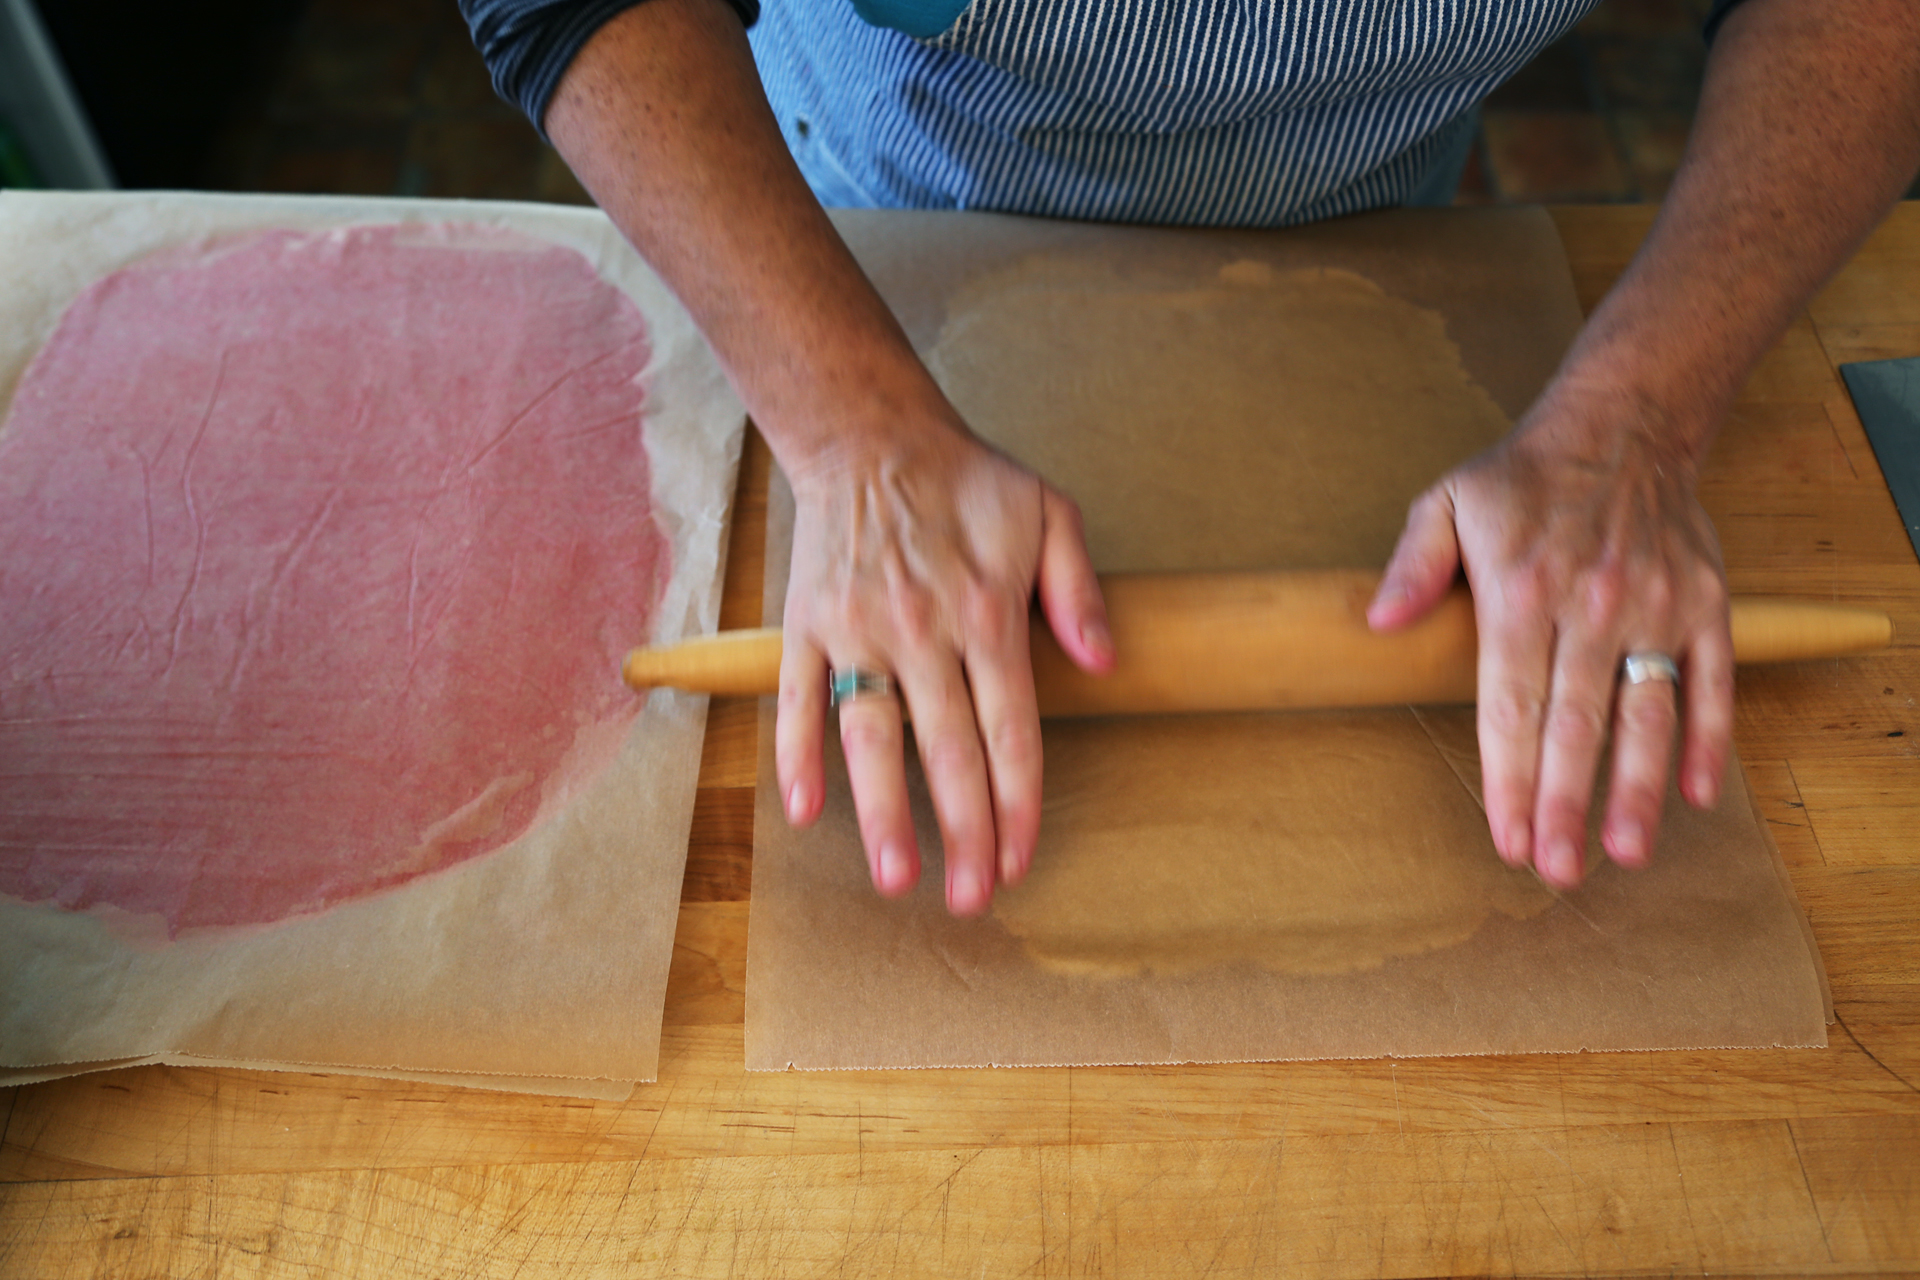 Top each with a second piece of parchment, then roll out each into a 10-by-12-inch rectangle.